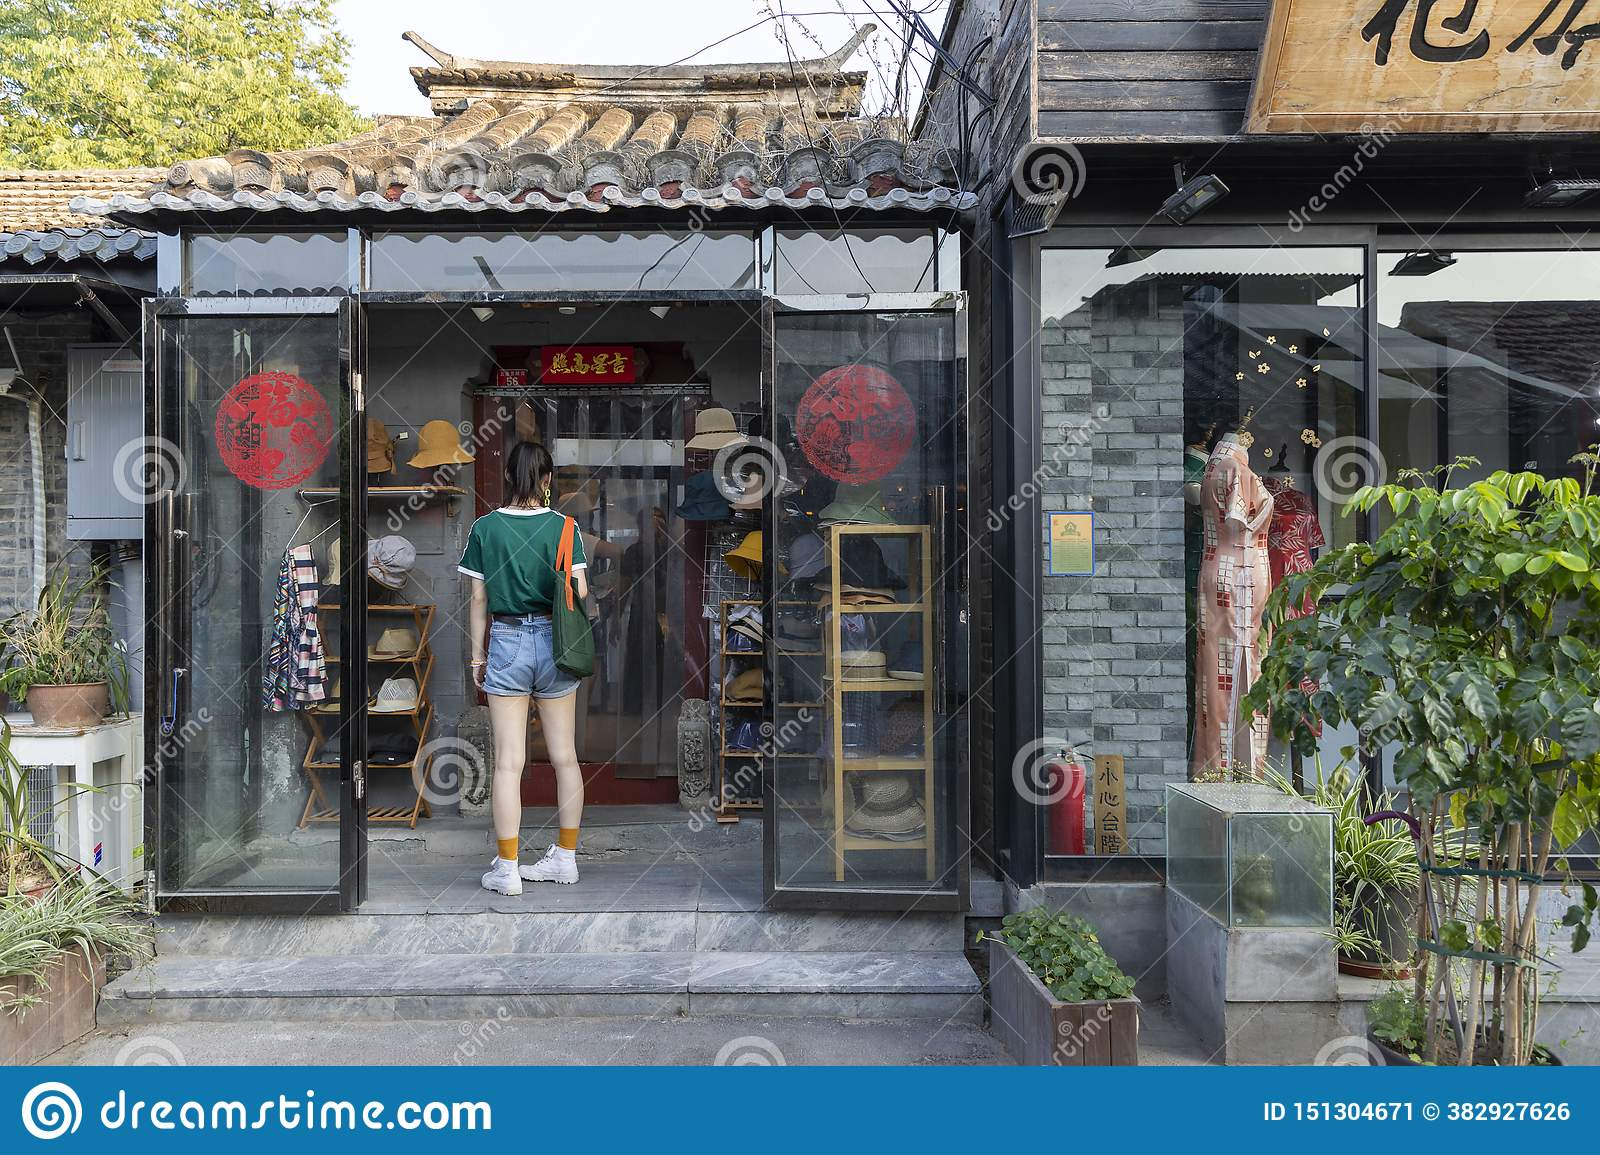 Das Wudaoying Hutong in Peking, China, ist eins der Handels-hutongs in Peking